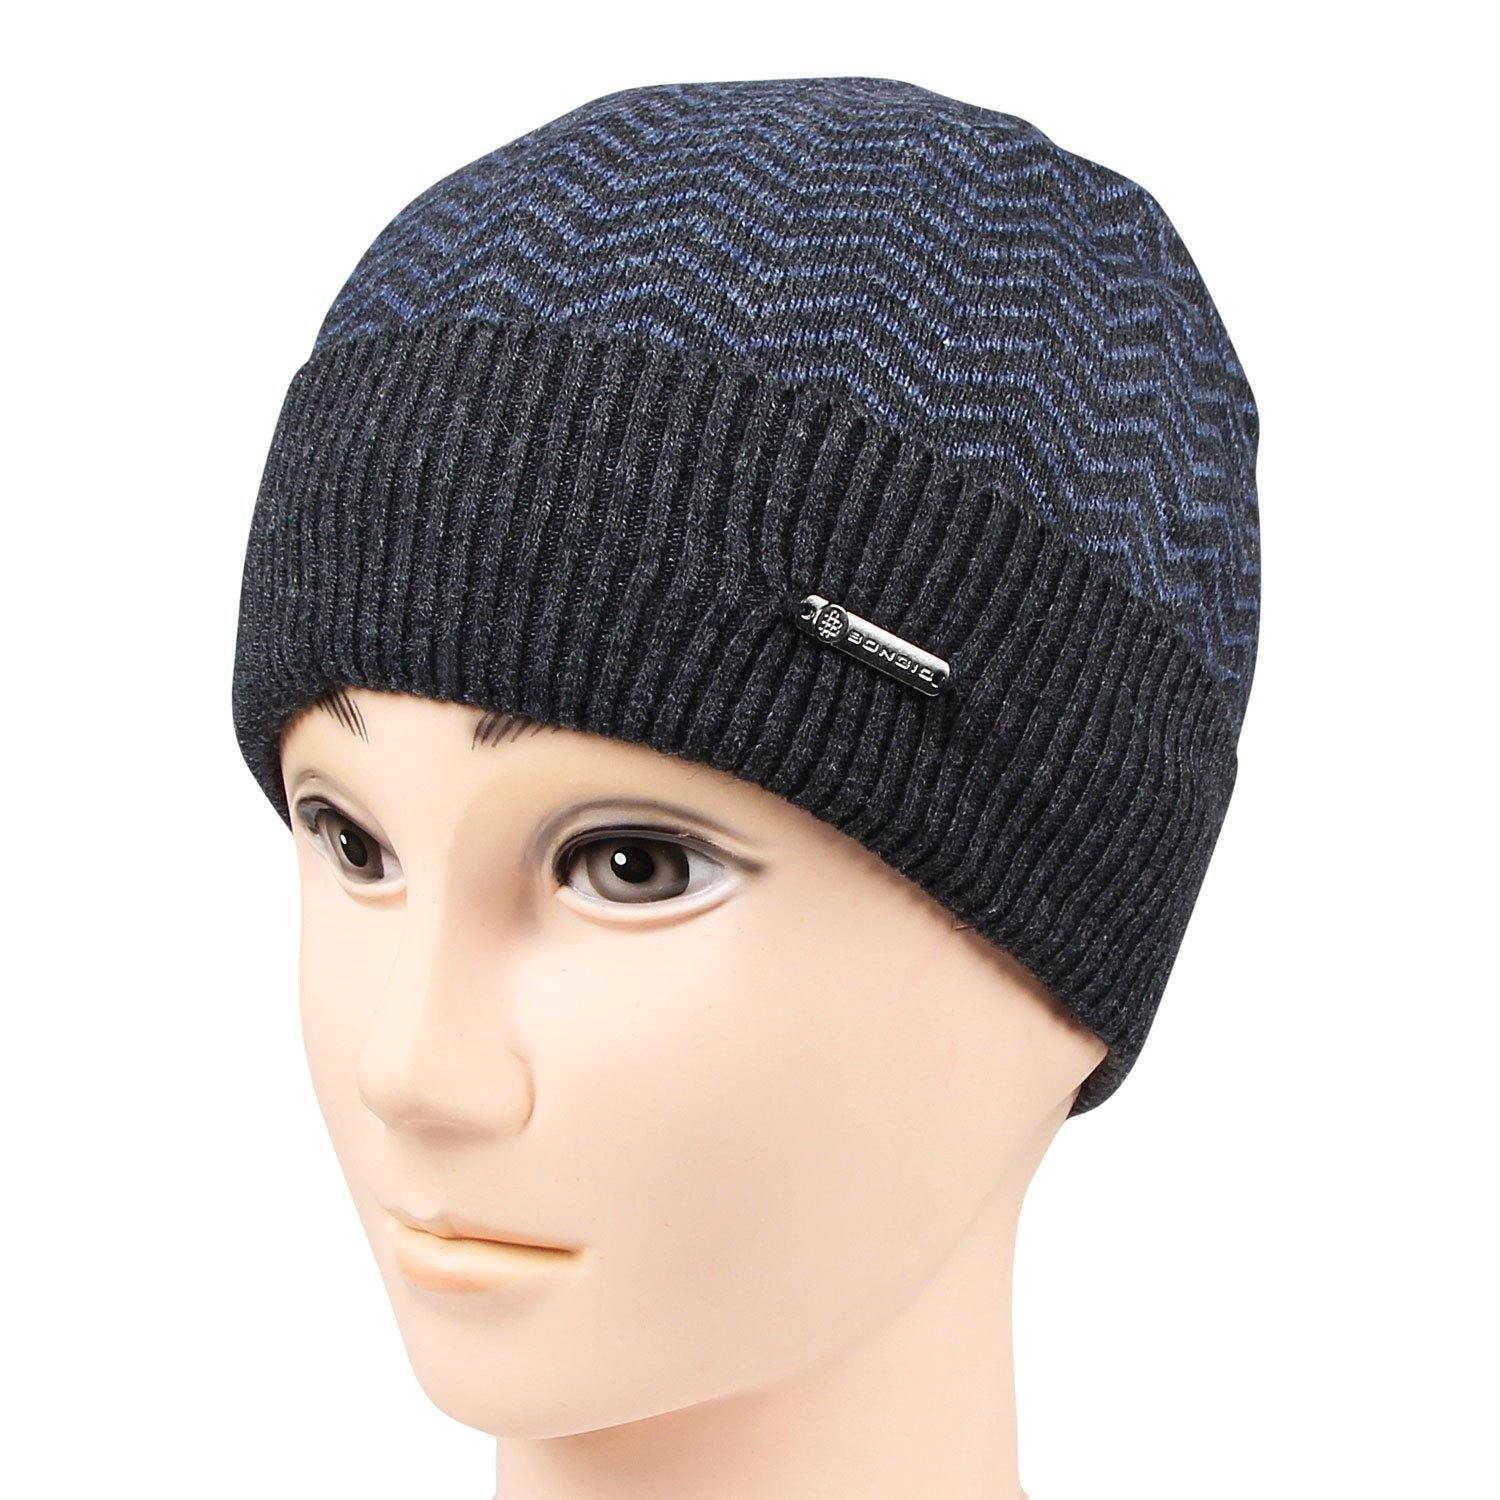 Men's Knitted Woolen Cap - Grey